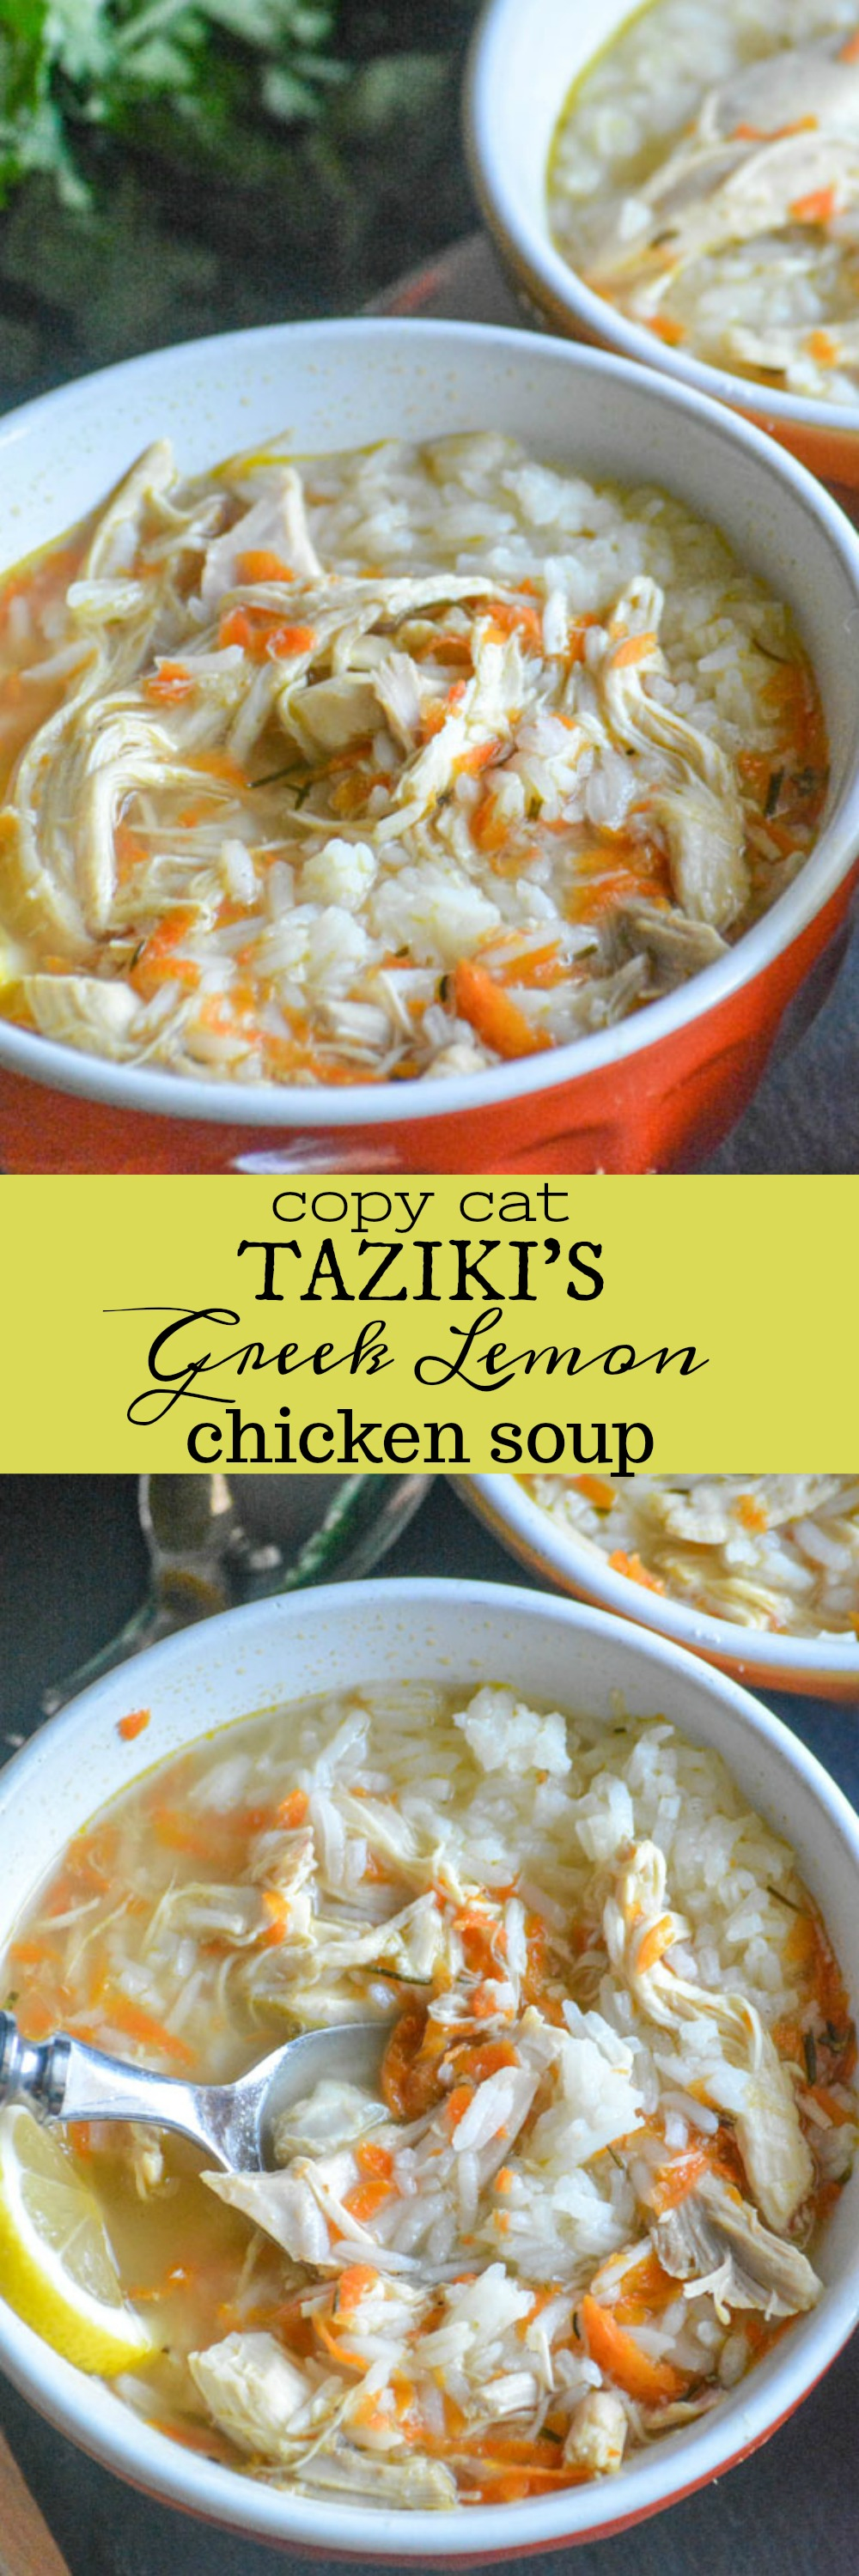 There's nothing quite as cozy, or as comforting, as a hot bowl full of chicken noodle soup. The traditional Greek version swaps noodles for rice, and adds a refreshing bit of tangy lemon with savory spices. This version is a spot on copy cat from one of our favorite cafe's, so you too can enjoy a heaping helping of Taziki's Greek Lemon Chicken Soup.